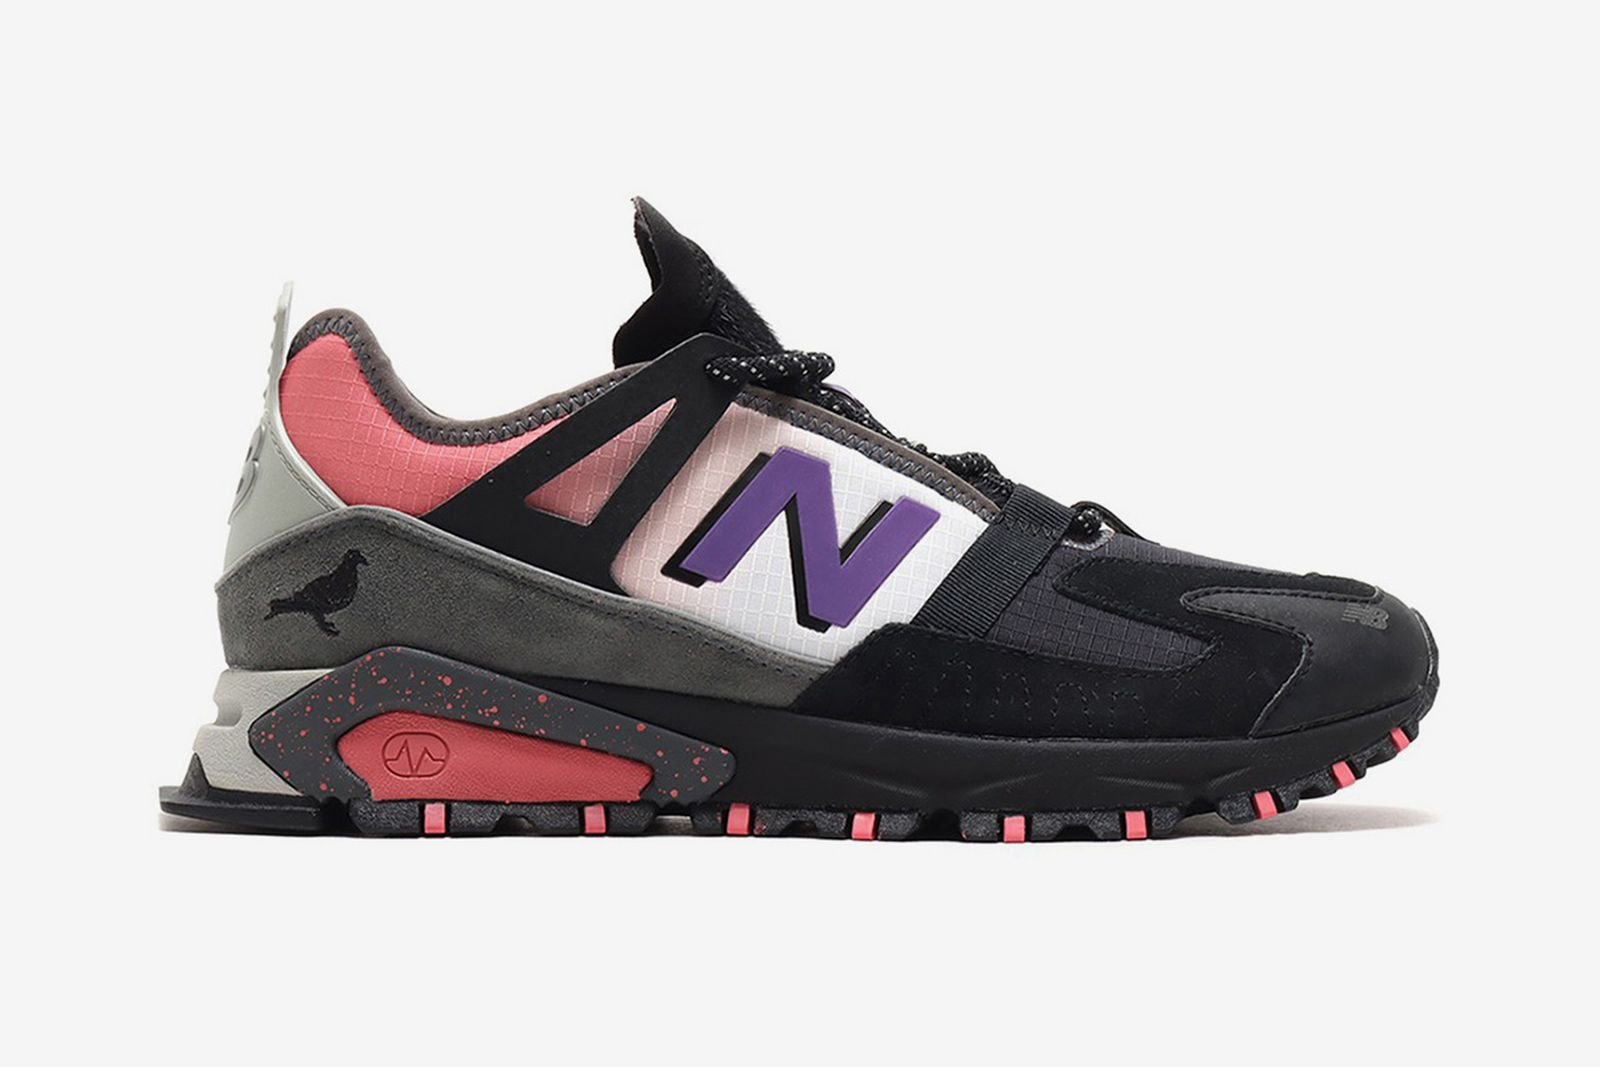 atmos-staple-new-balance-x-racer-utility-release-date-price-04